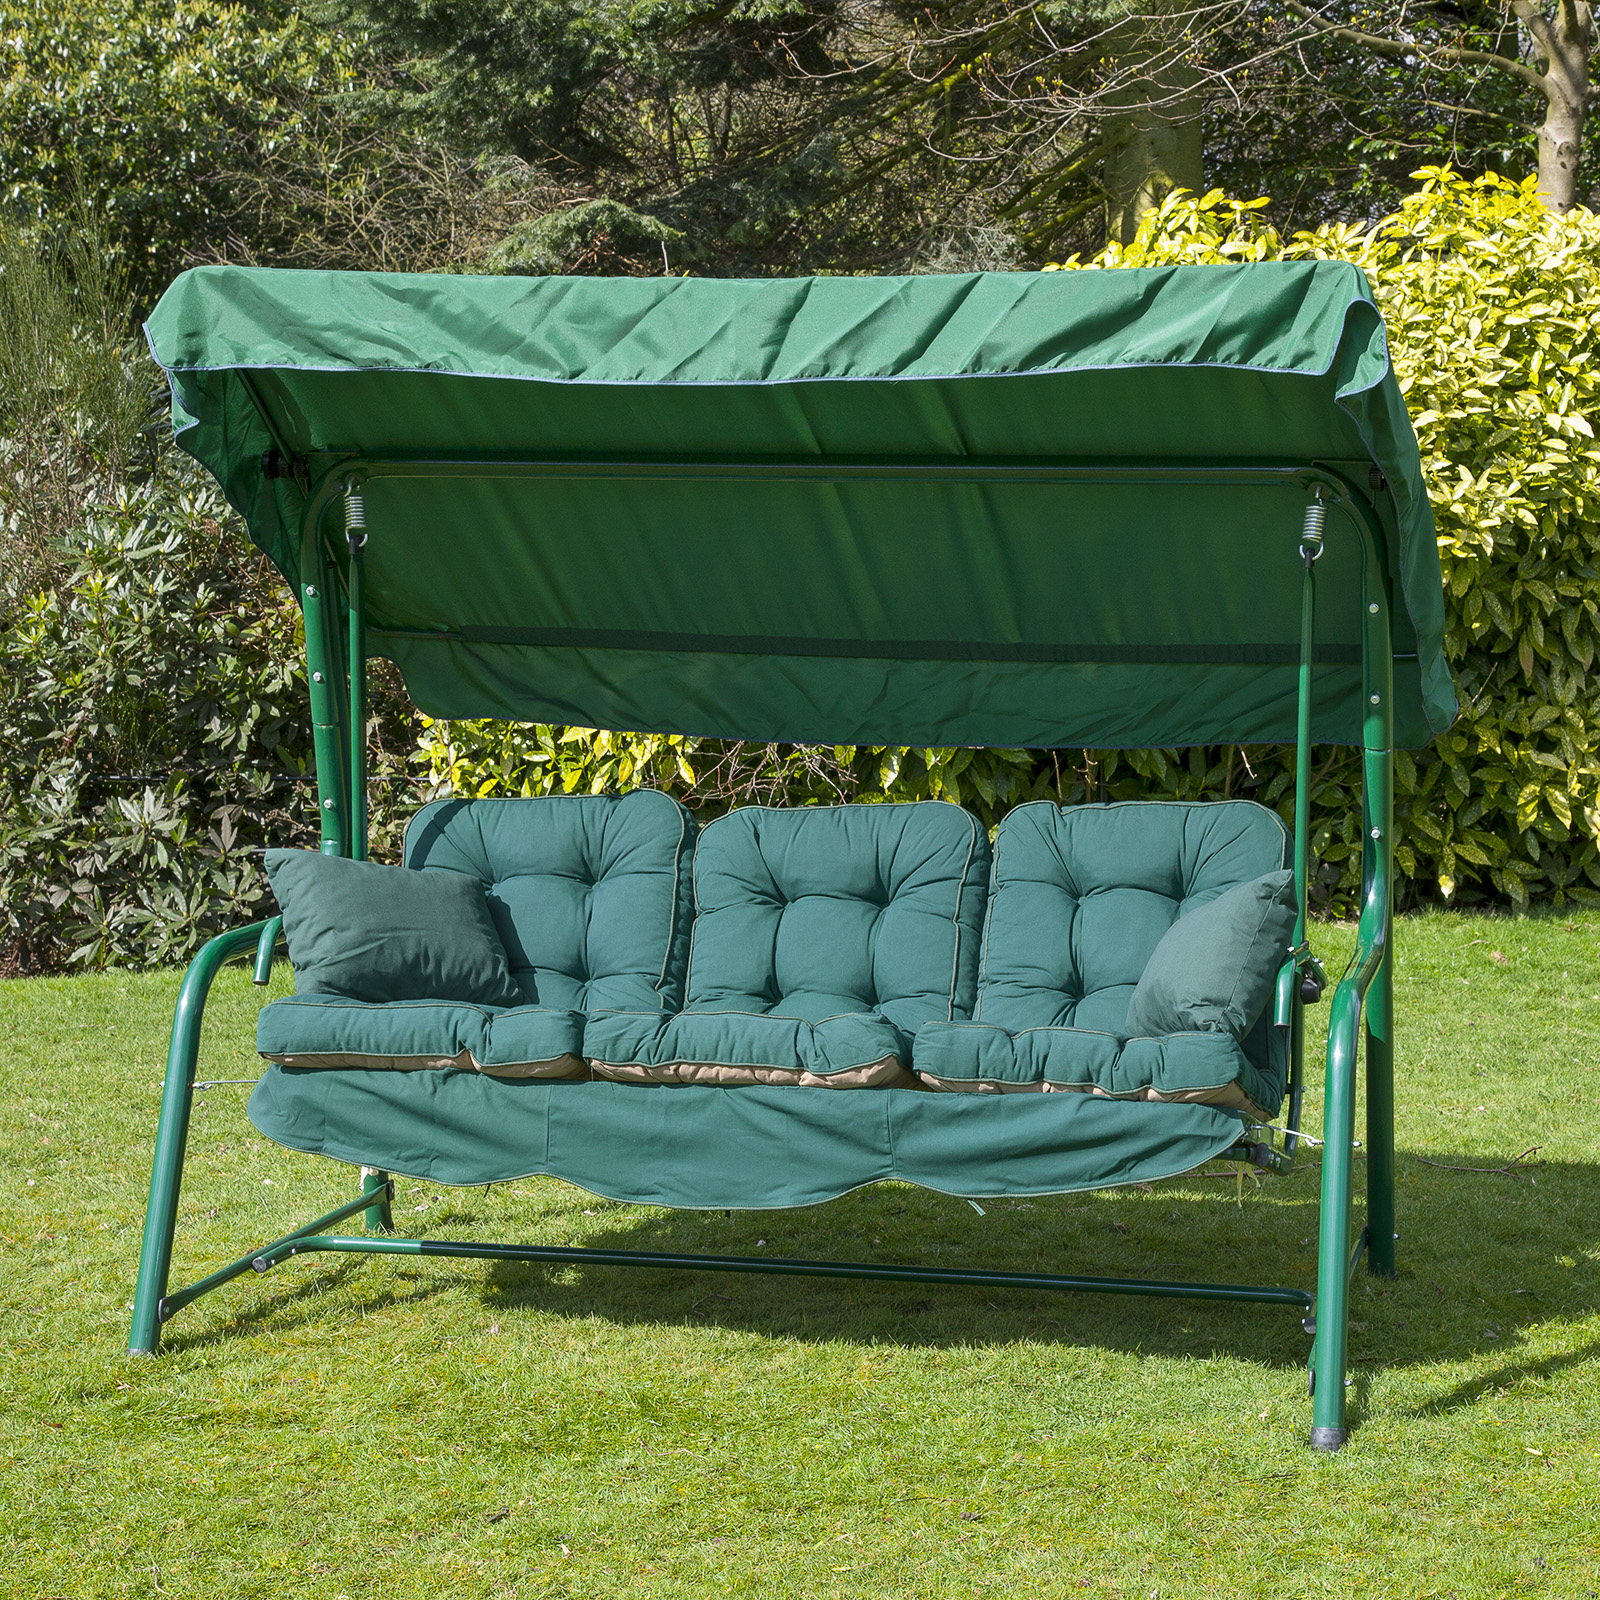 Alfresia Luxury Garden Swing Seat Cushions 3 Seater